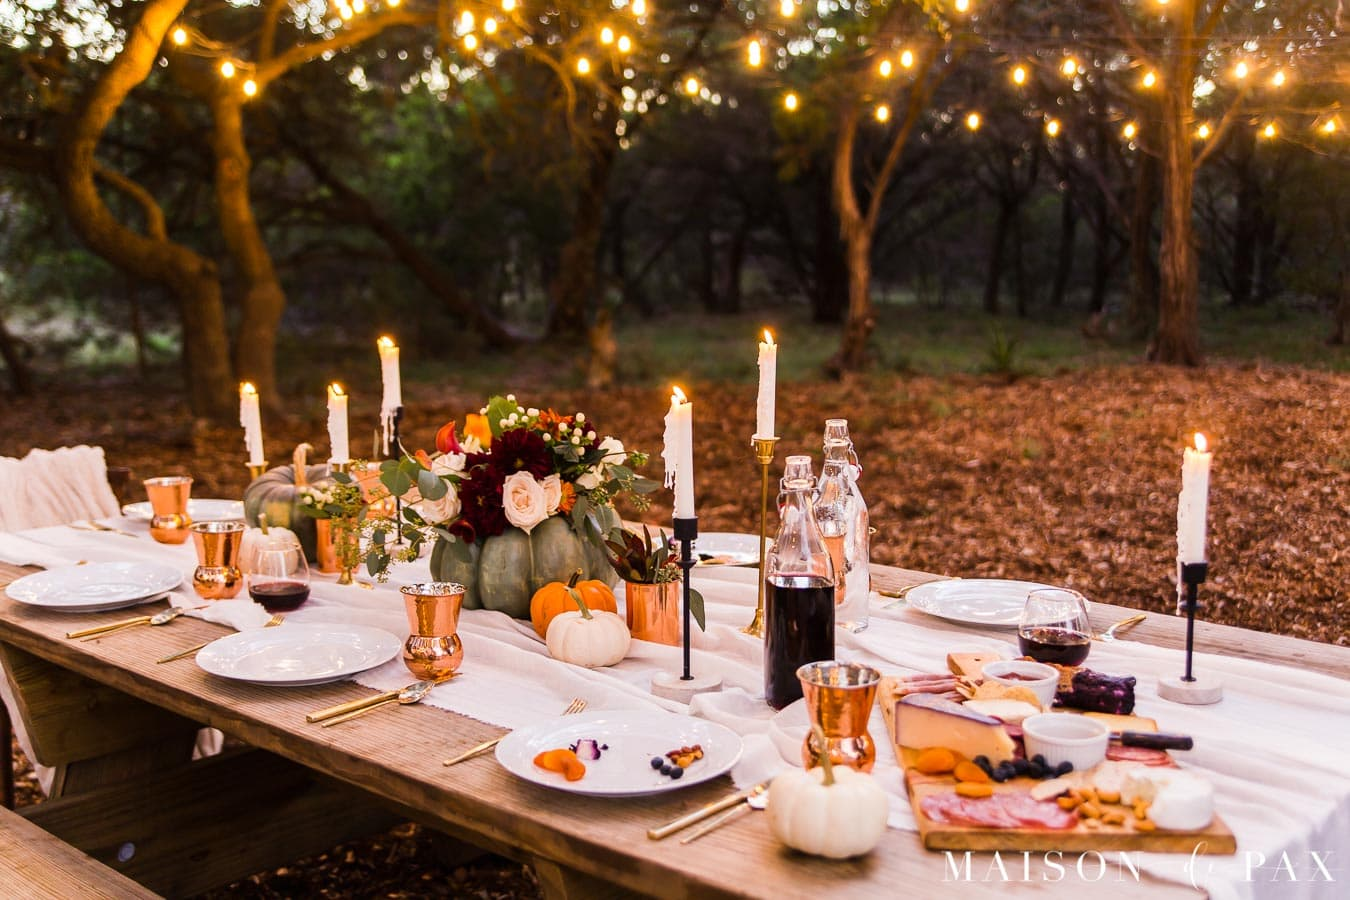 string lights over Thanksgiving table with pumpkins and candles | Maison de Pax